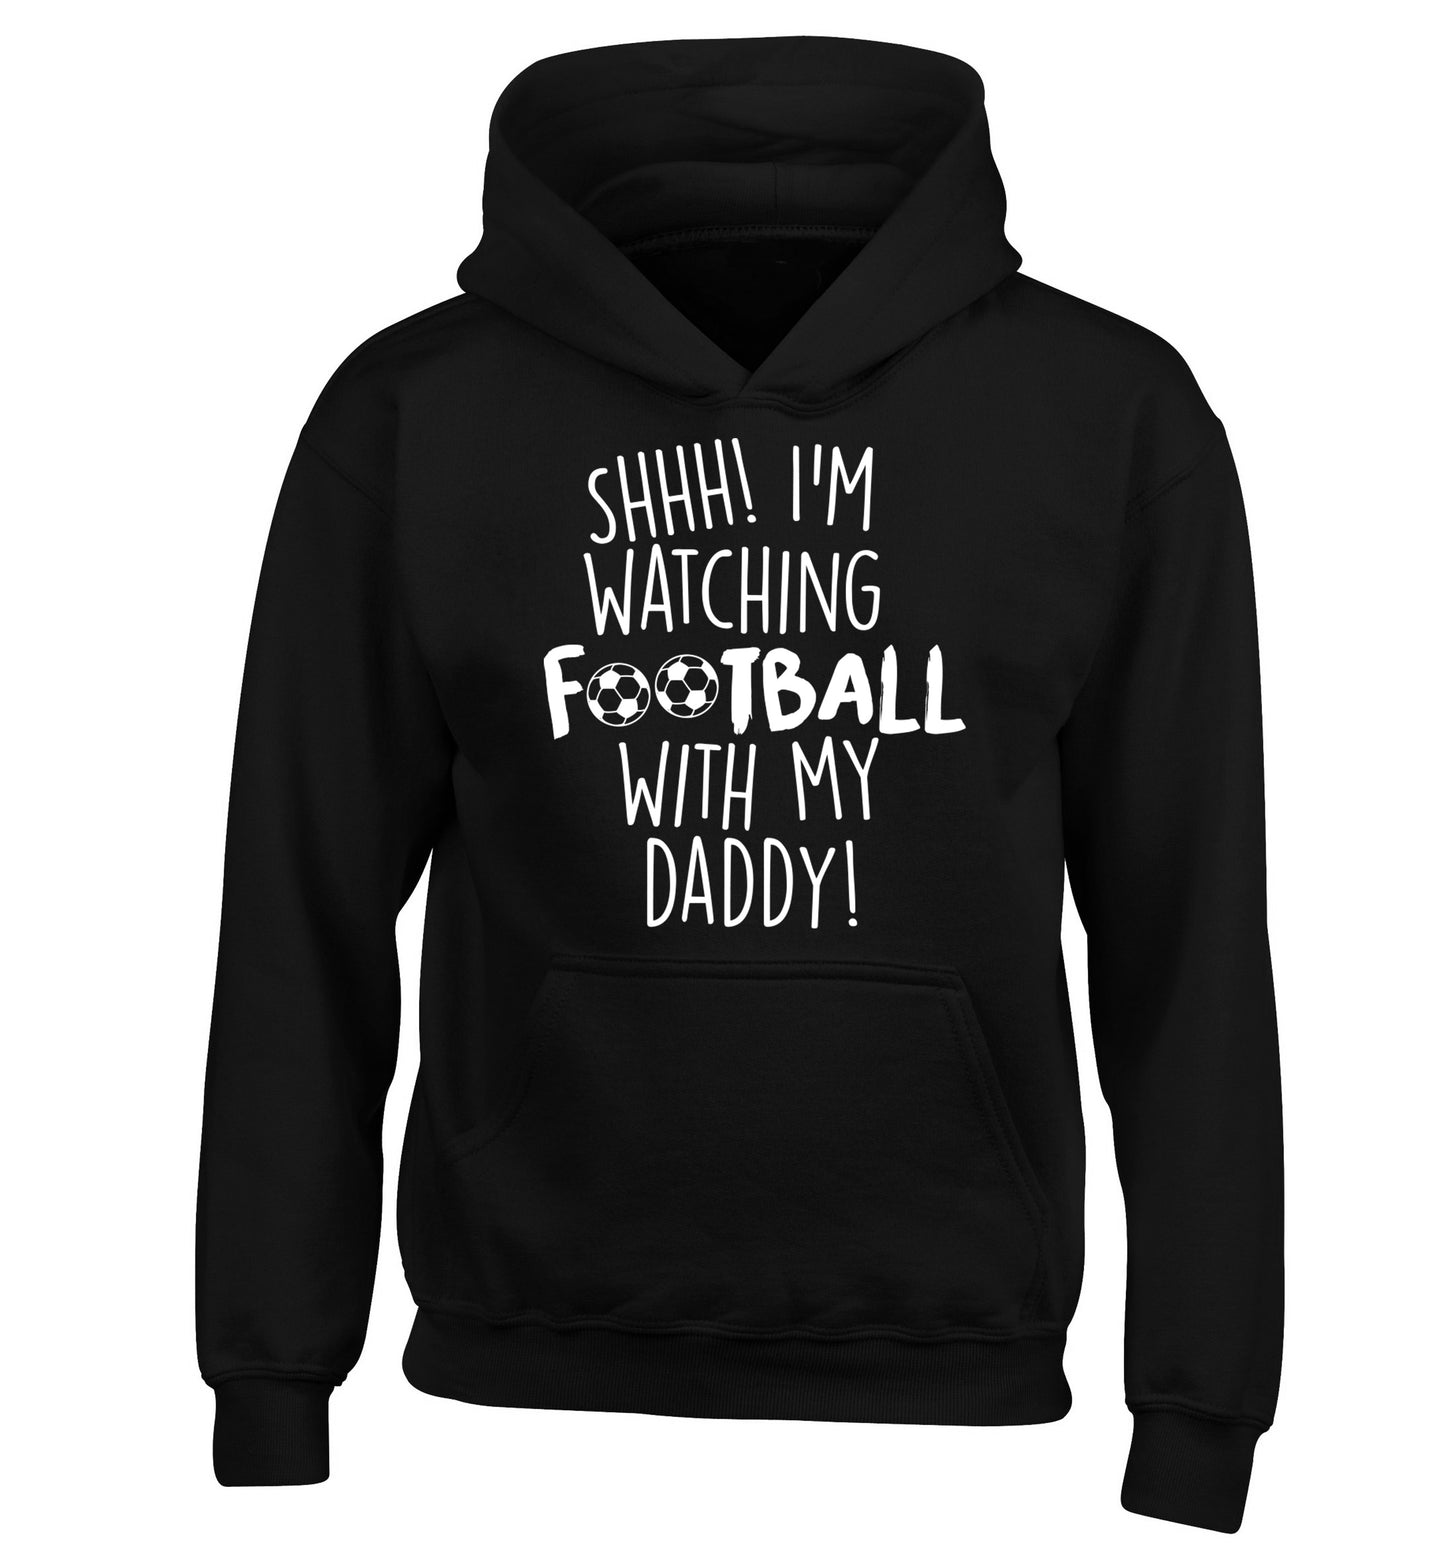 Shhh I'm watching football with my daddy children's black hoodie 12-14 Years